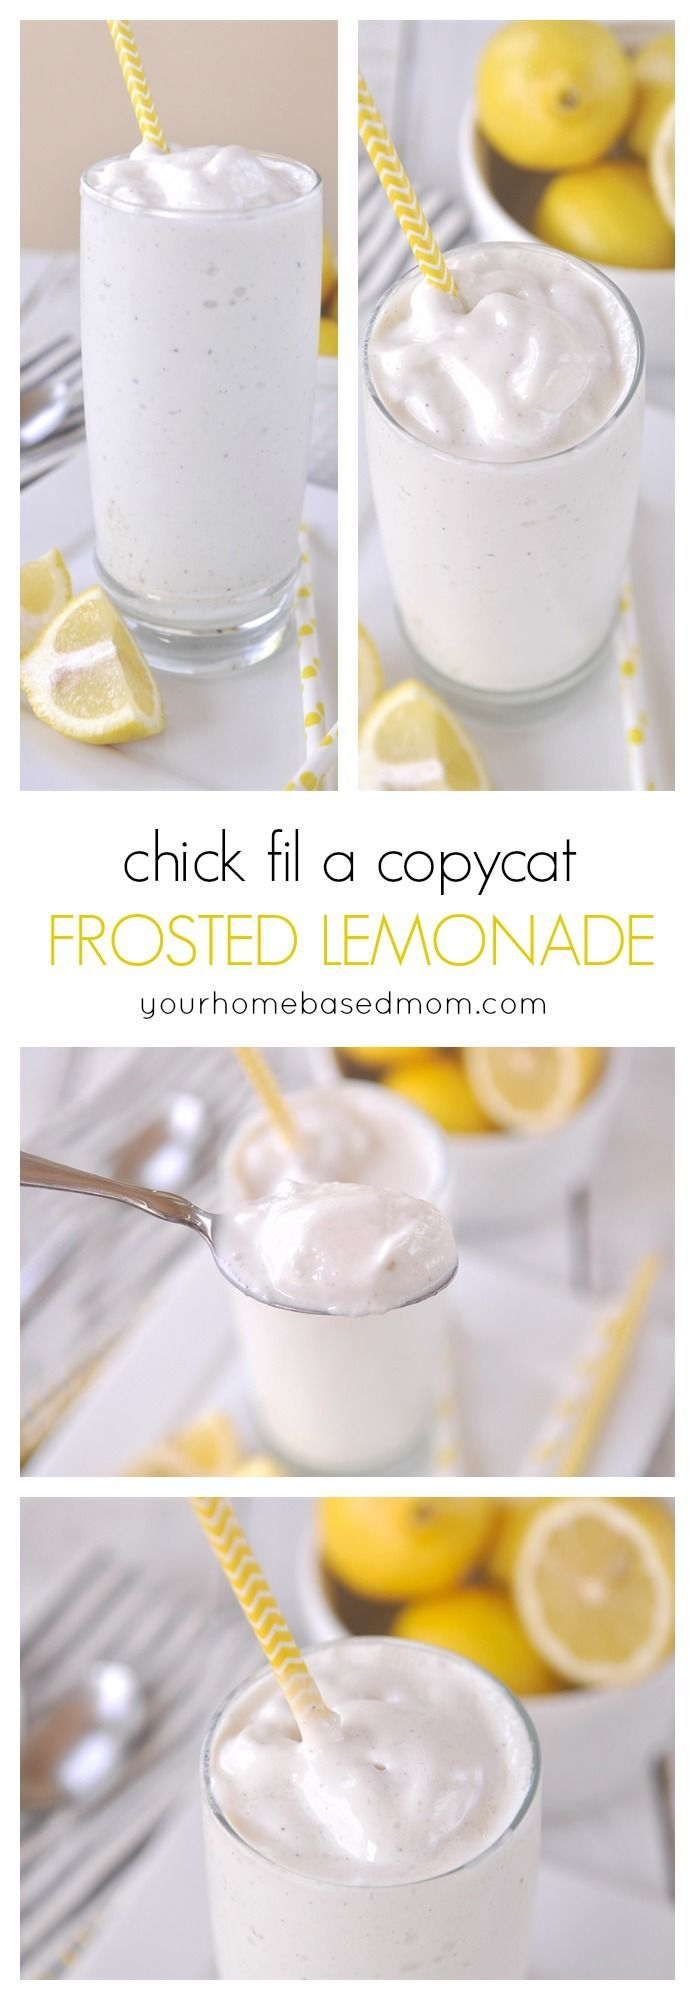 Enjoy a Chick fil A Copycat Frosted Lemonade on a warm summer day! Make it at home.